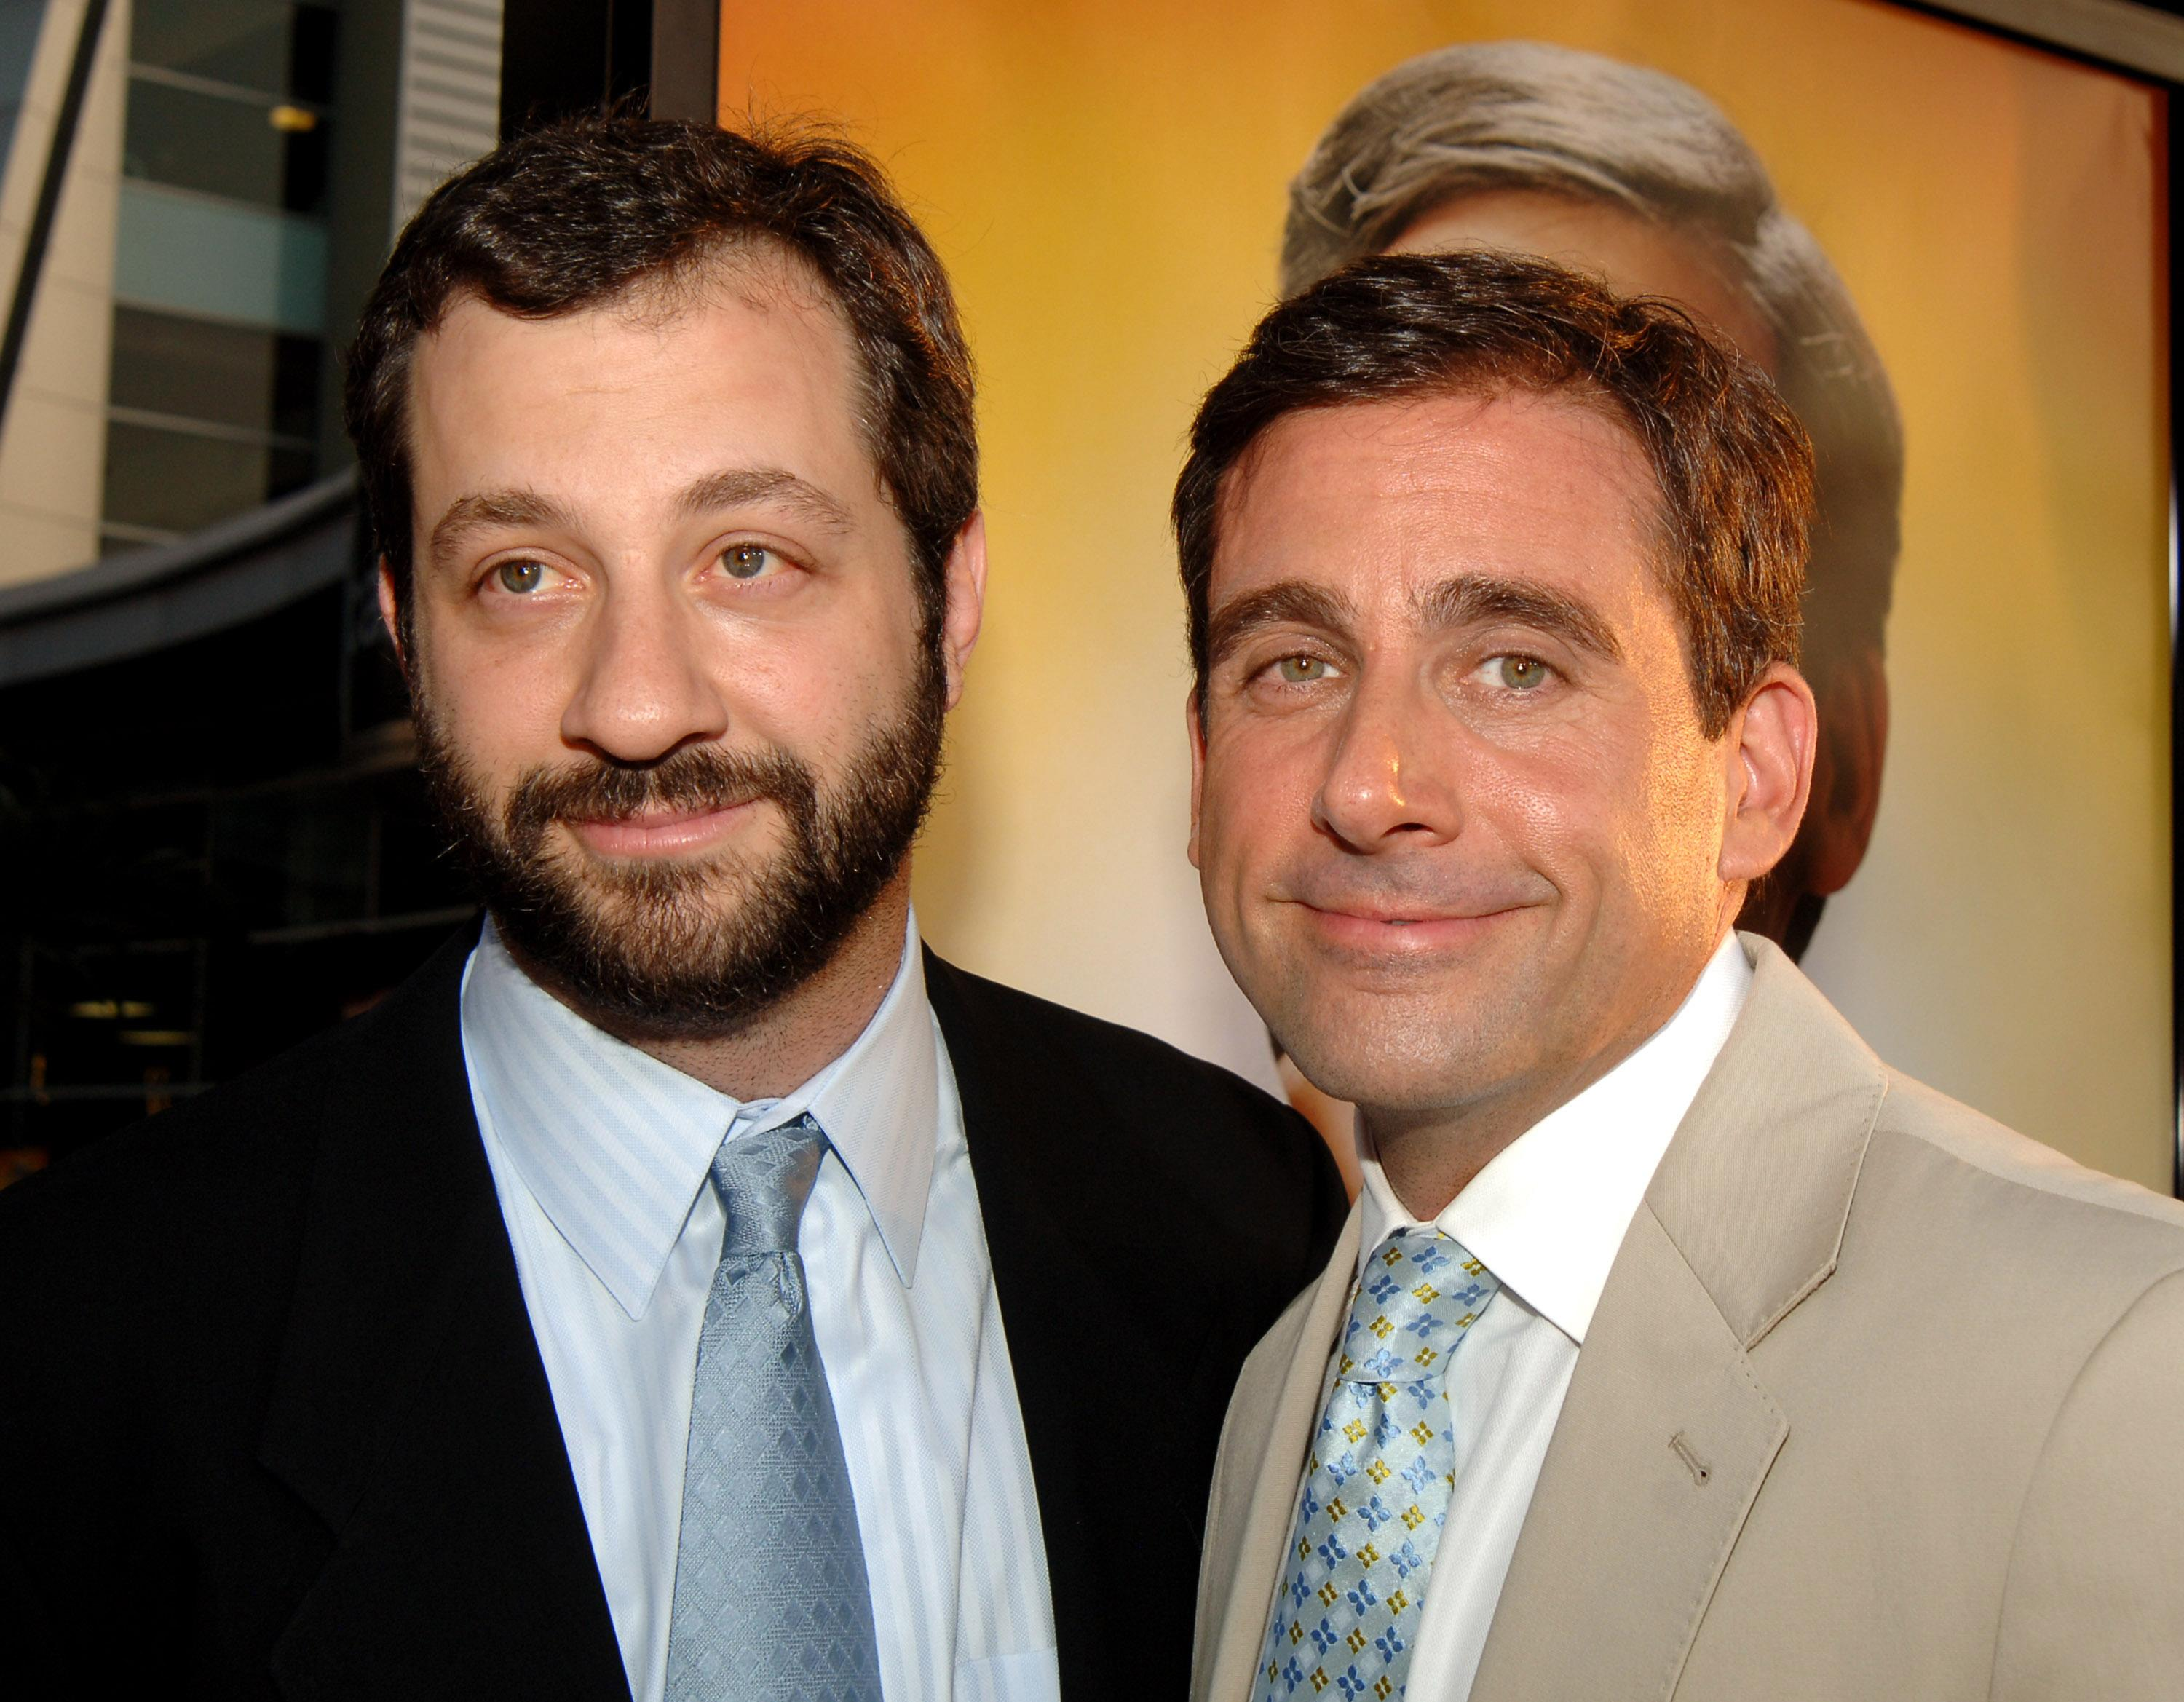 Judd Apatow, director, and Steve Carell (Photo by John Sciulli/WireImage)